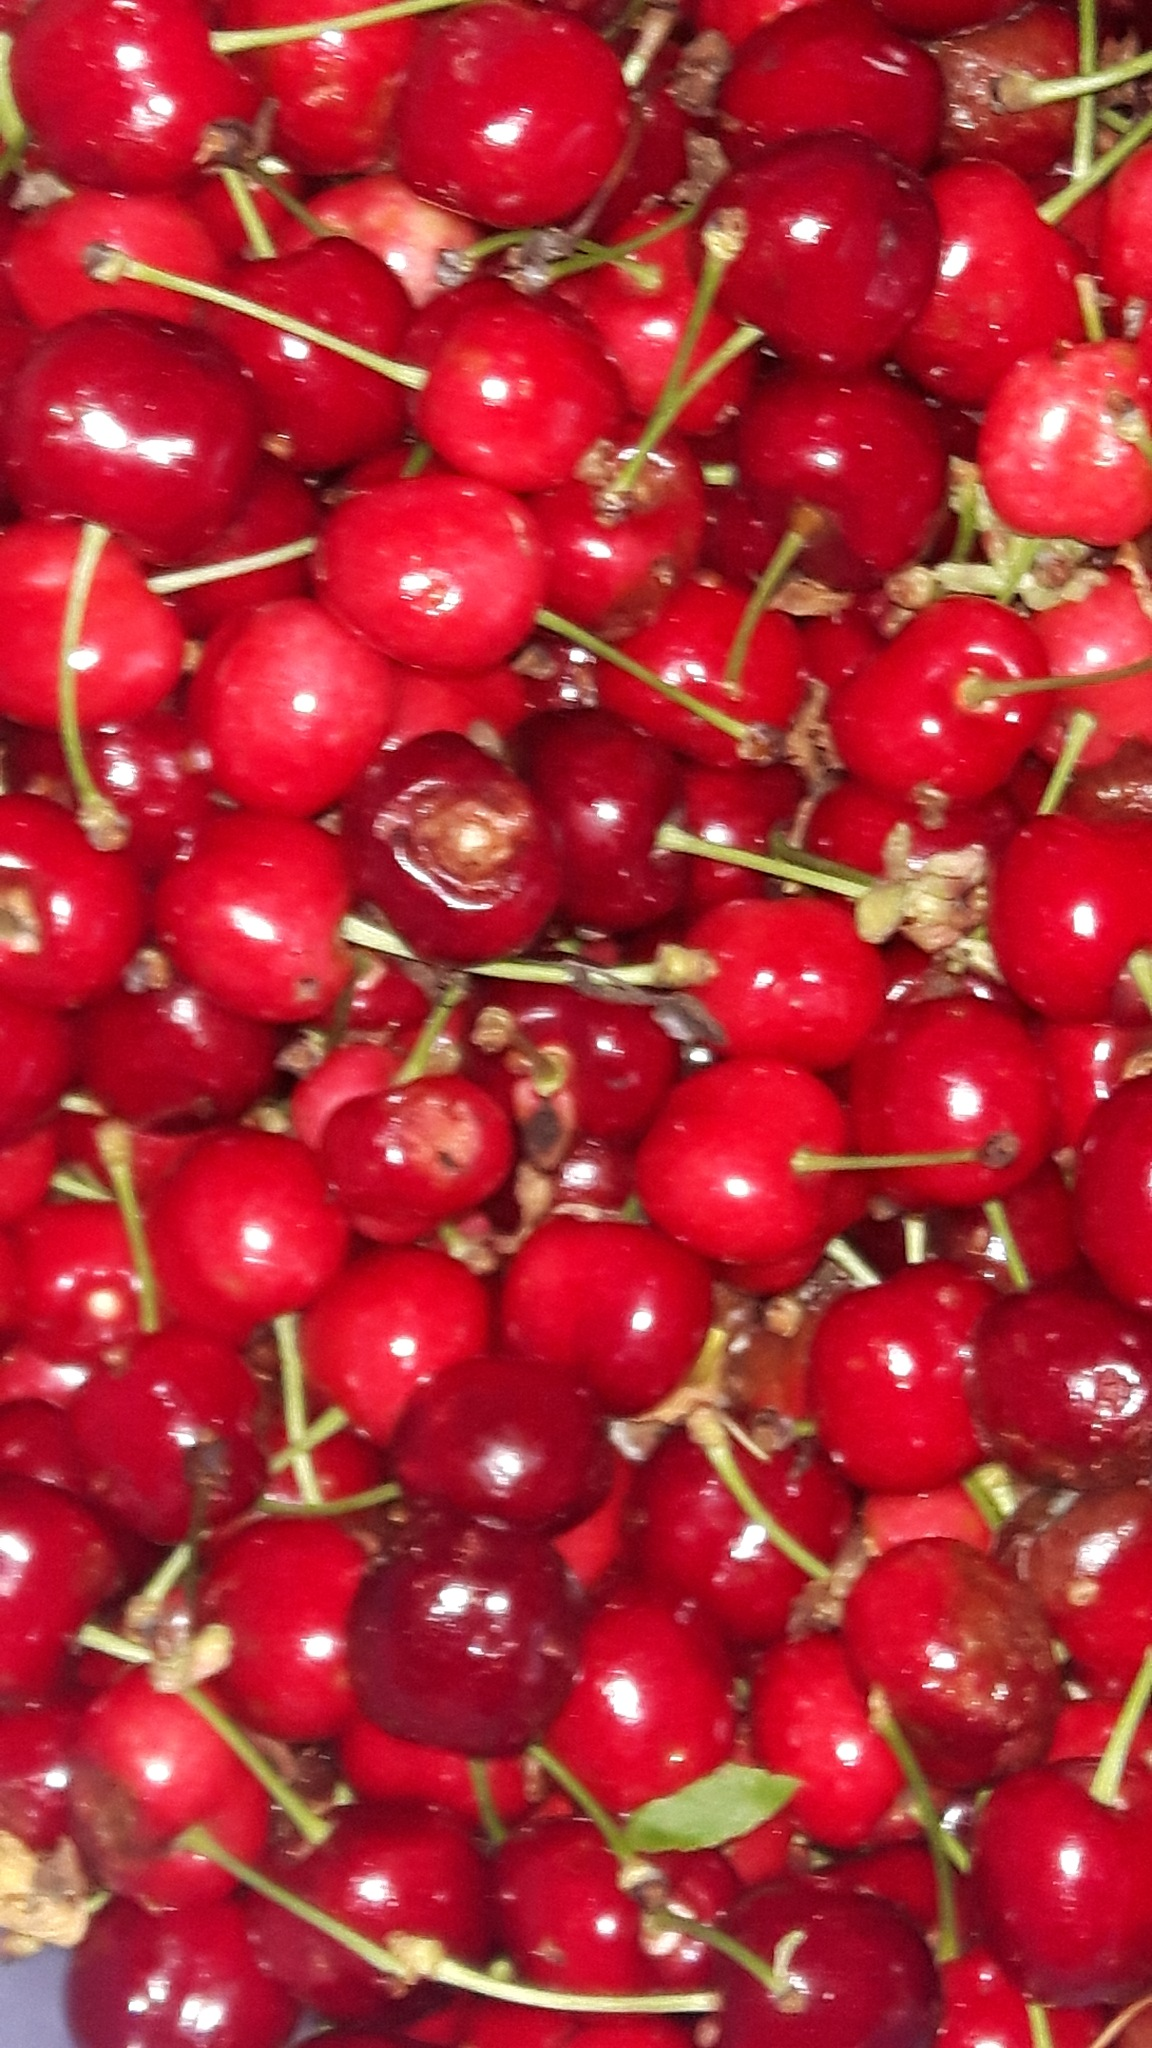 Cherries by Mevludin_Hasanovic